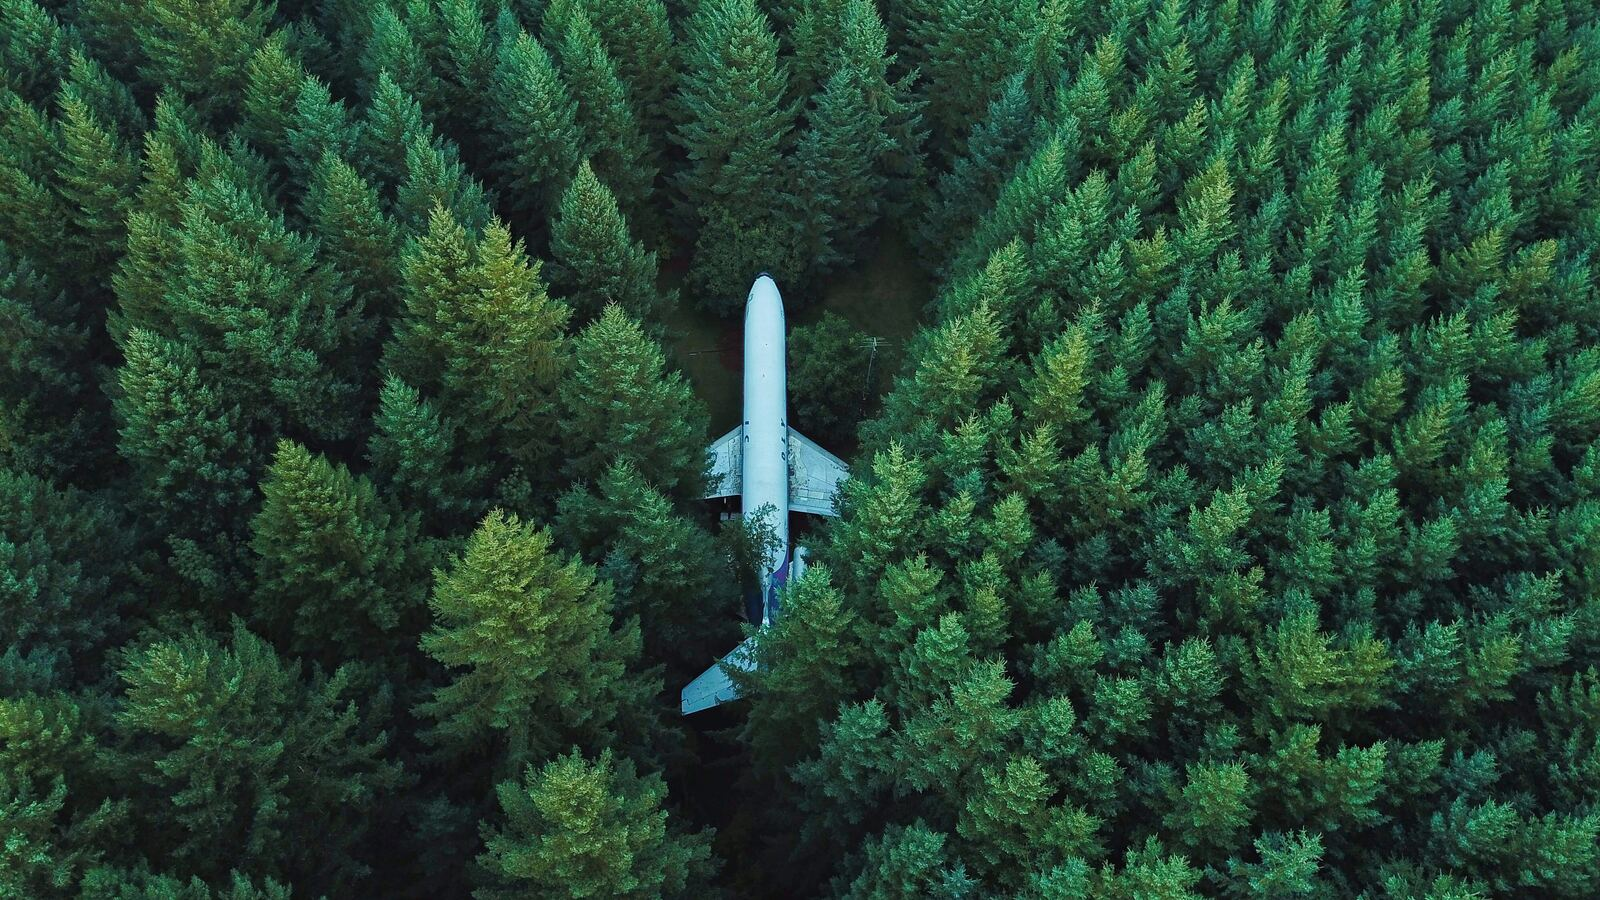 plane-in-middle-of-forest-4k-0p.jpg